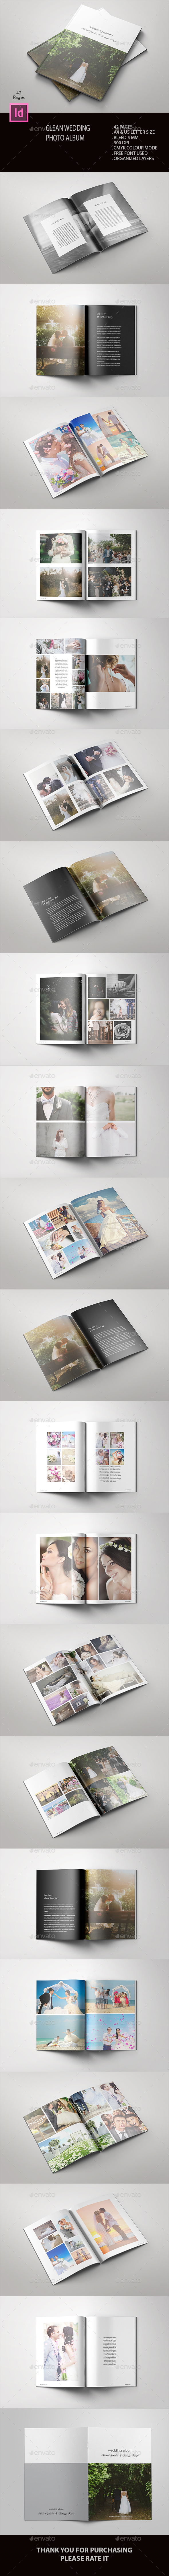 Clean Wedding Album - Photo Albums Print Templates